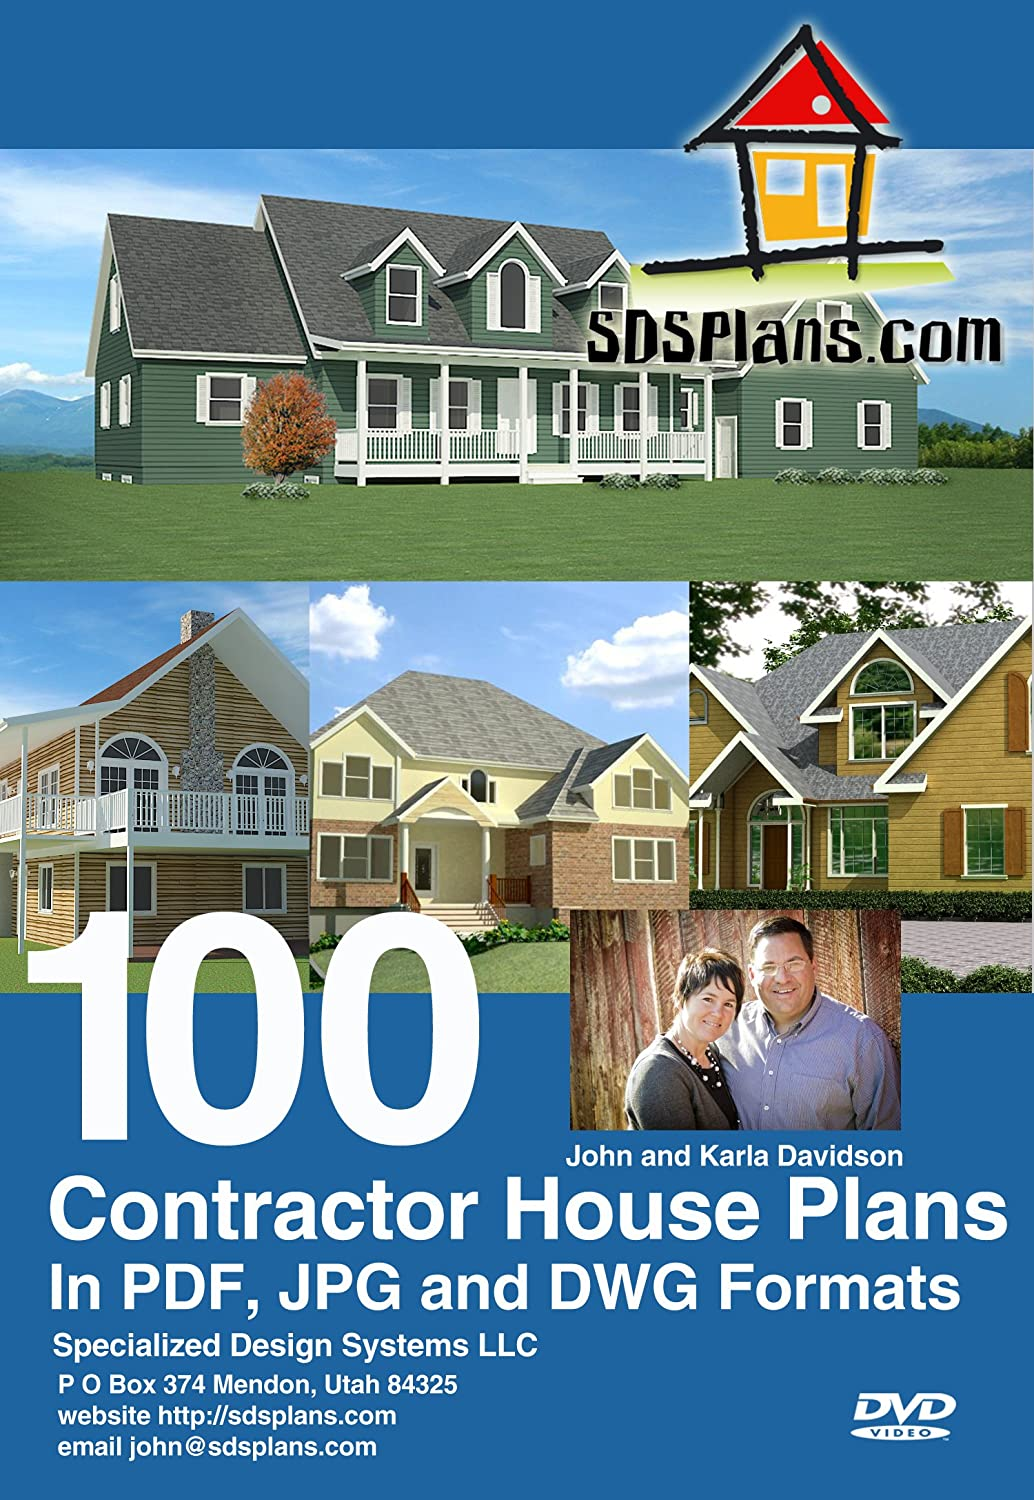 beautiful contractor house plans ideas today designs ideas maft us 100 sl house plans 59 best house plans images on pinterest